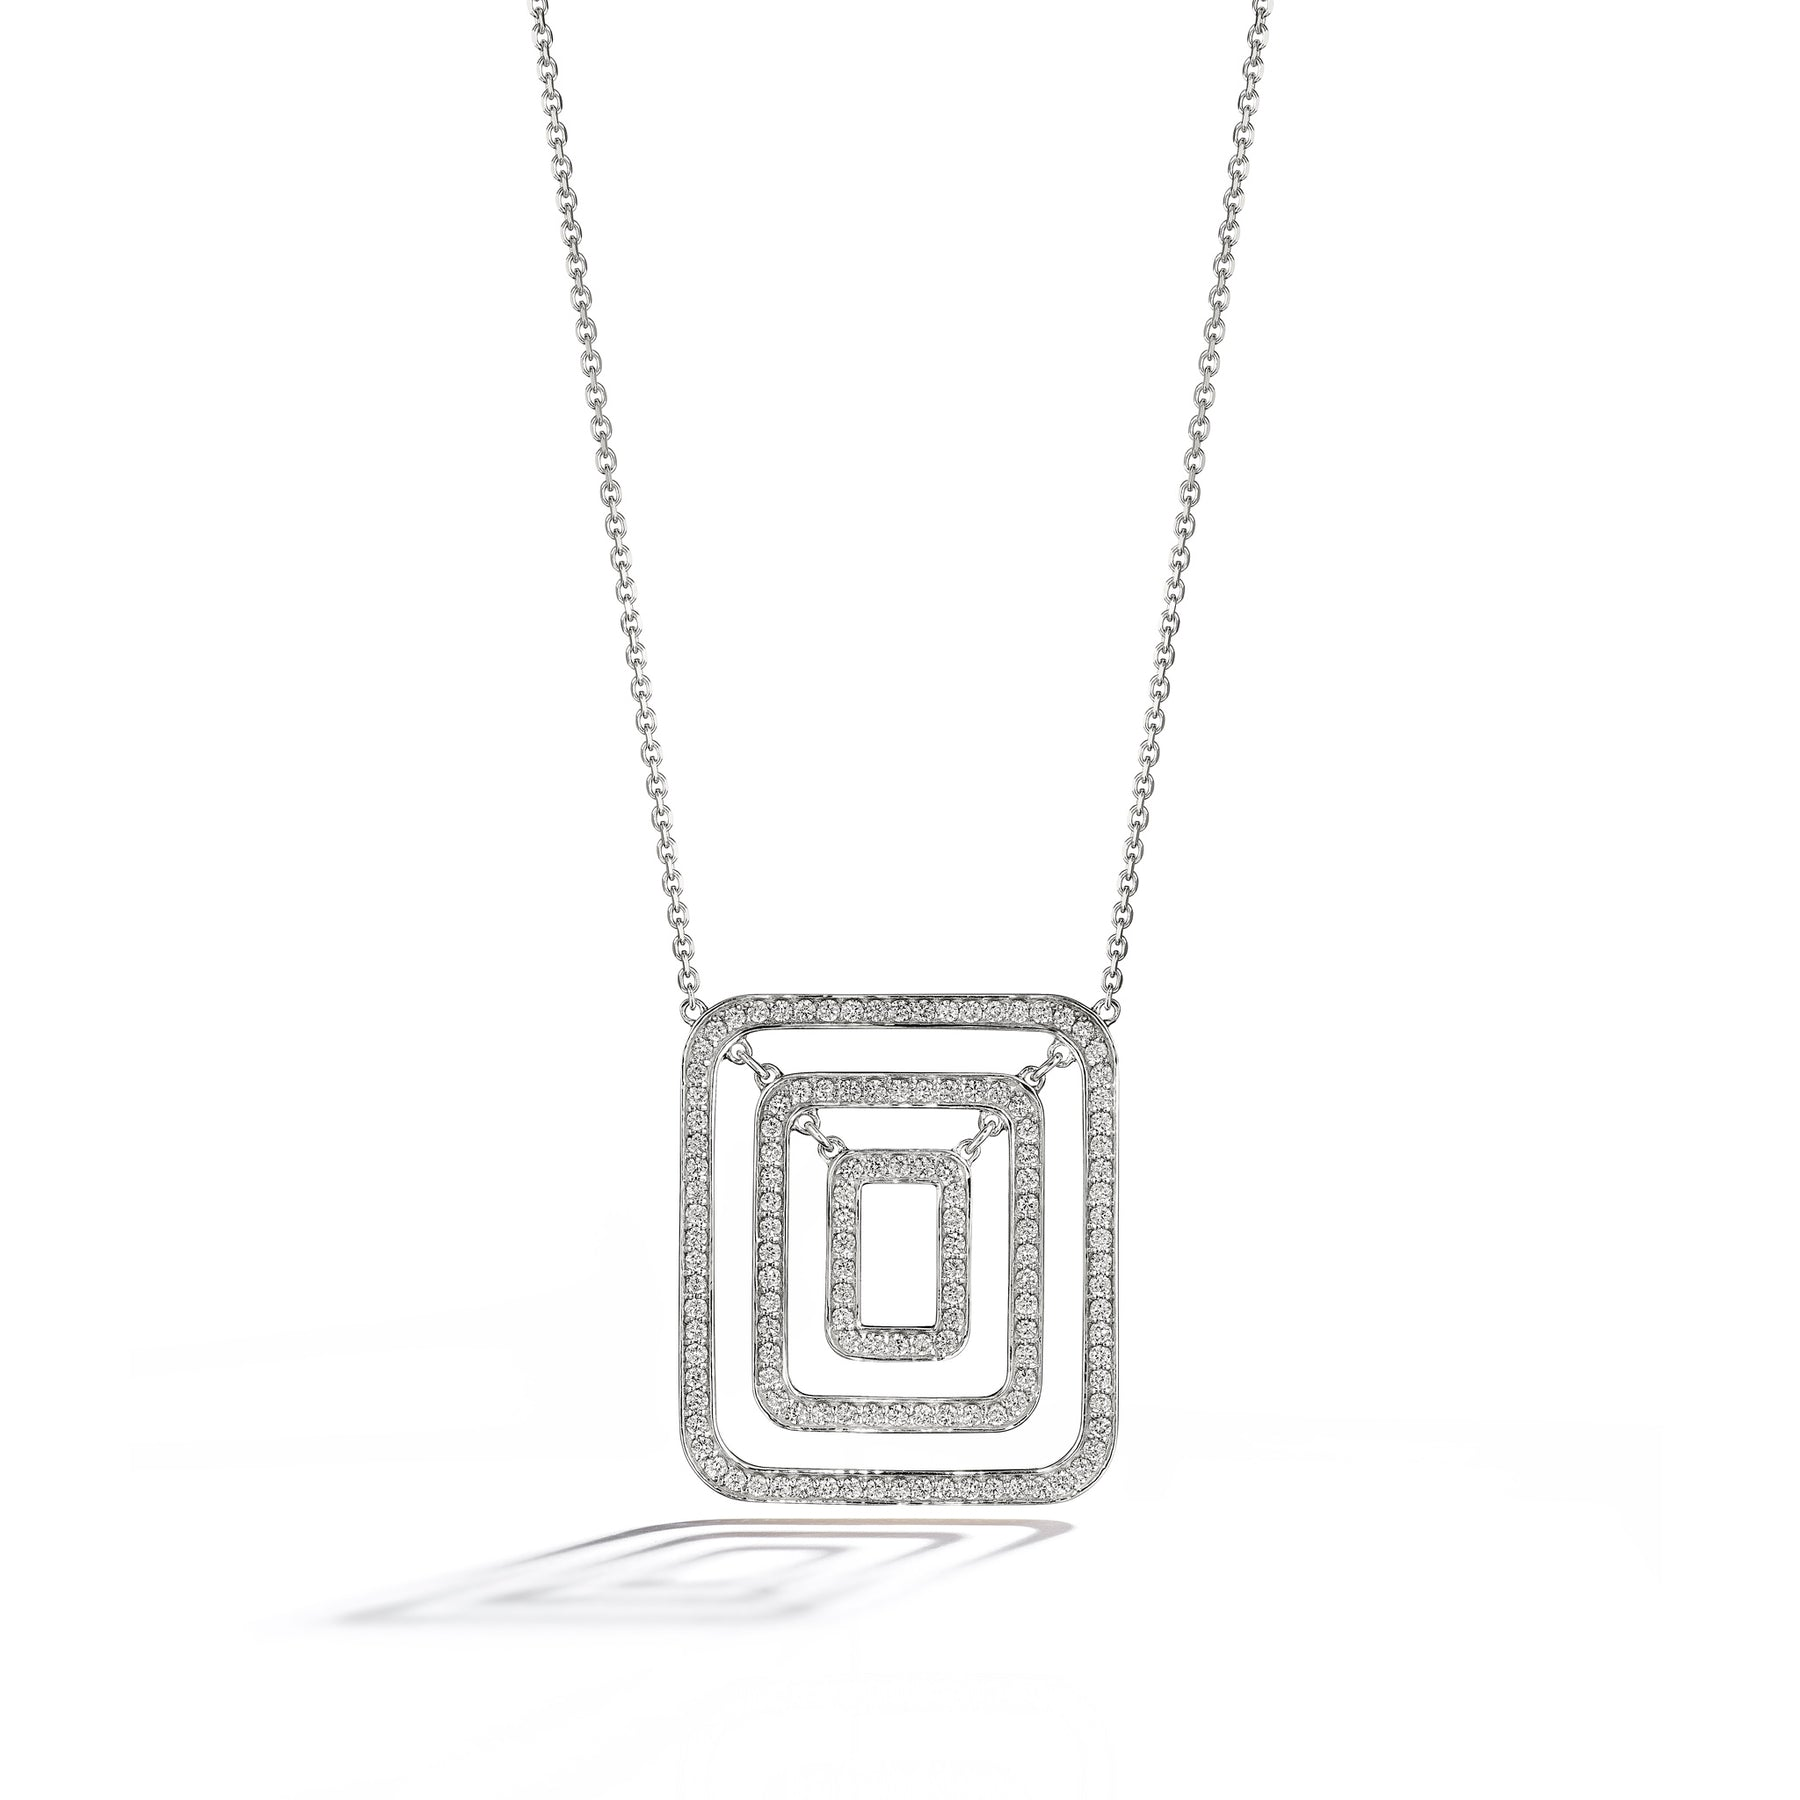 Mimi-So-Piece-Square-Swing-Necklace_18k White Gold